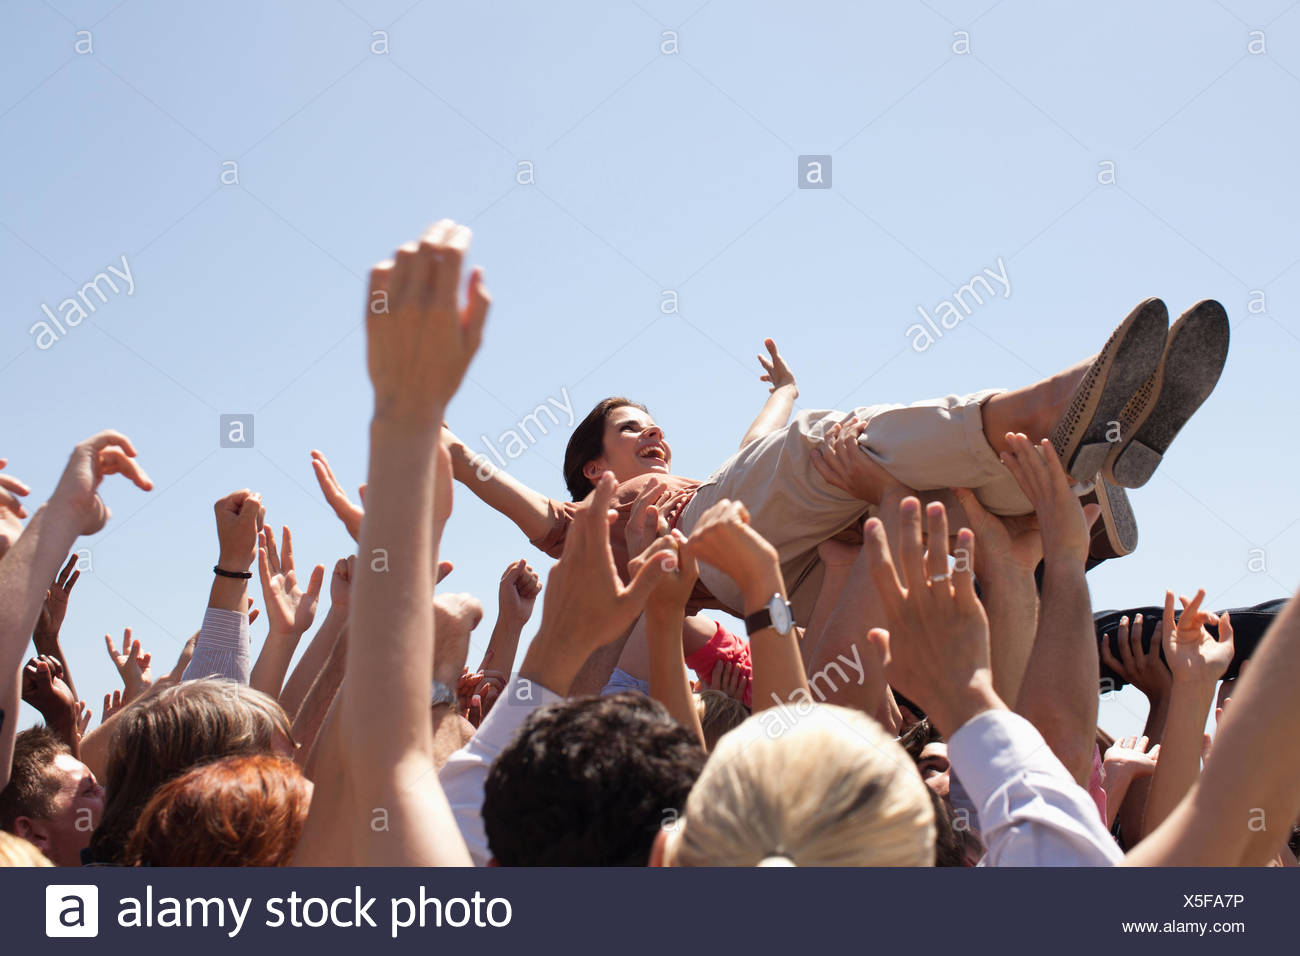 Woman crowd surfing Photo Stock